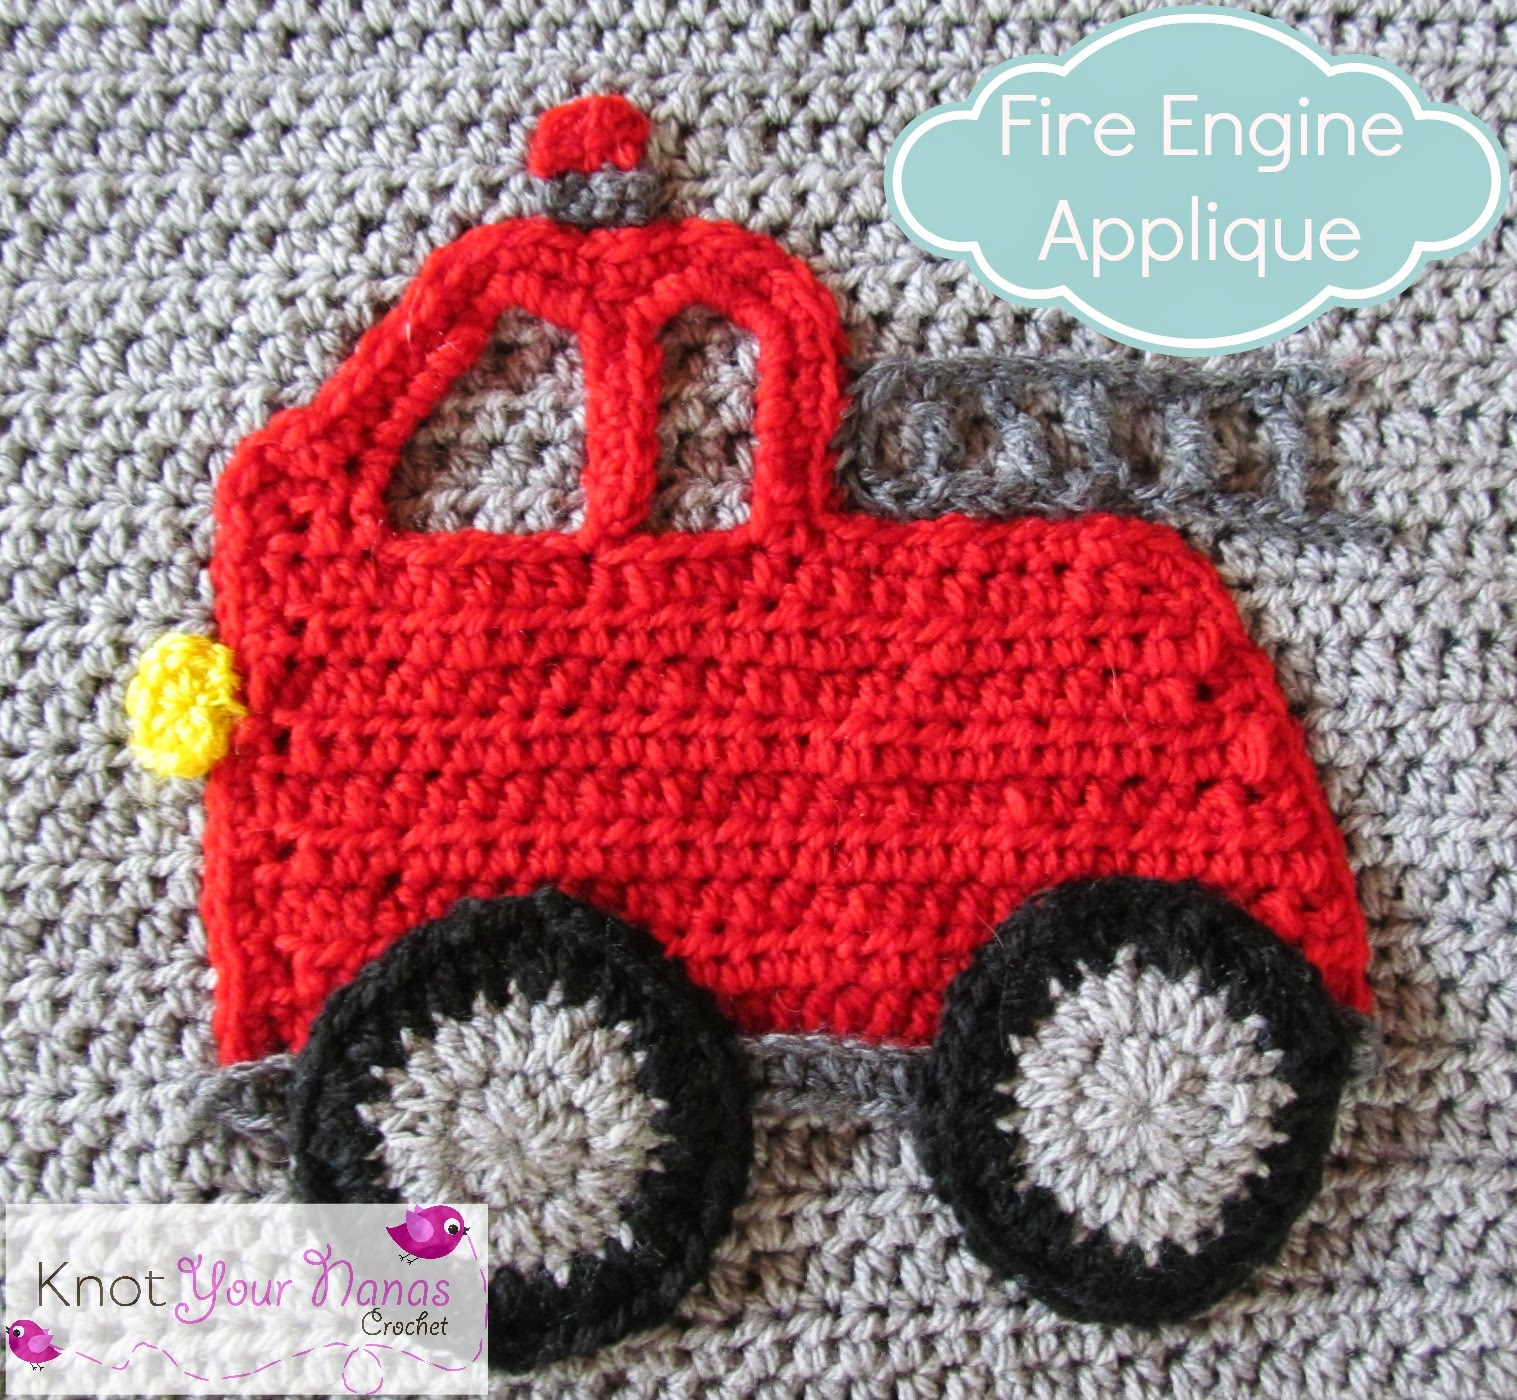 Crochet-Fire-Engine-Applique